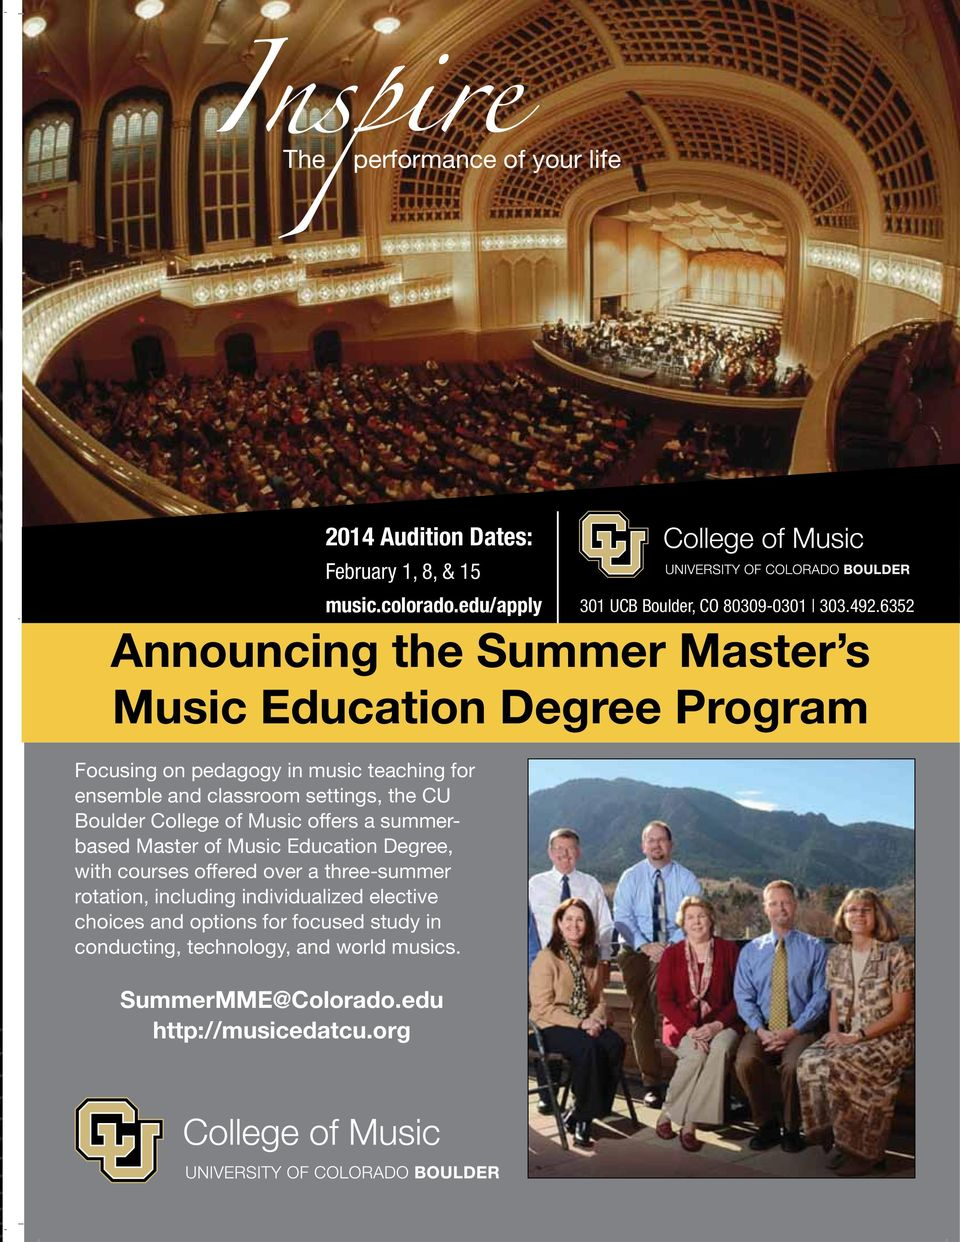 the CU Boulder College of Music offers a summerbased Master of Music Education Degree, with courses offered over a three-summer rotation,